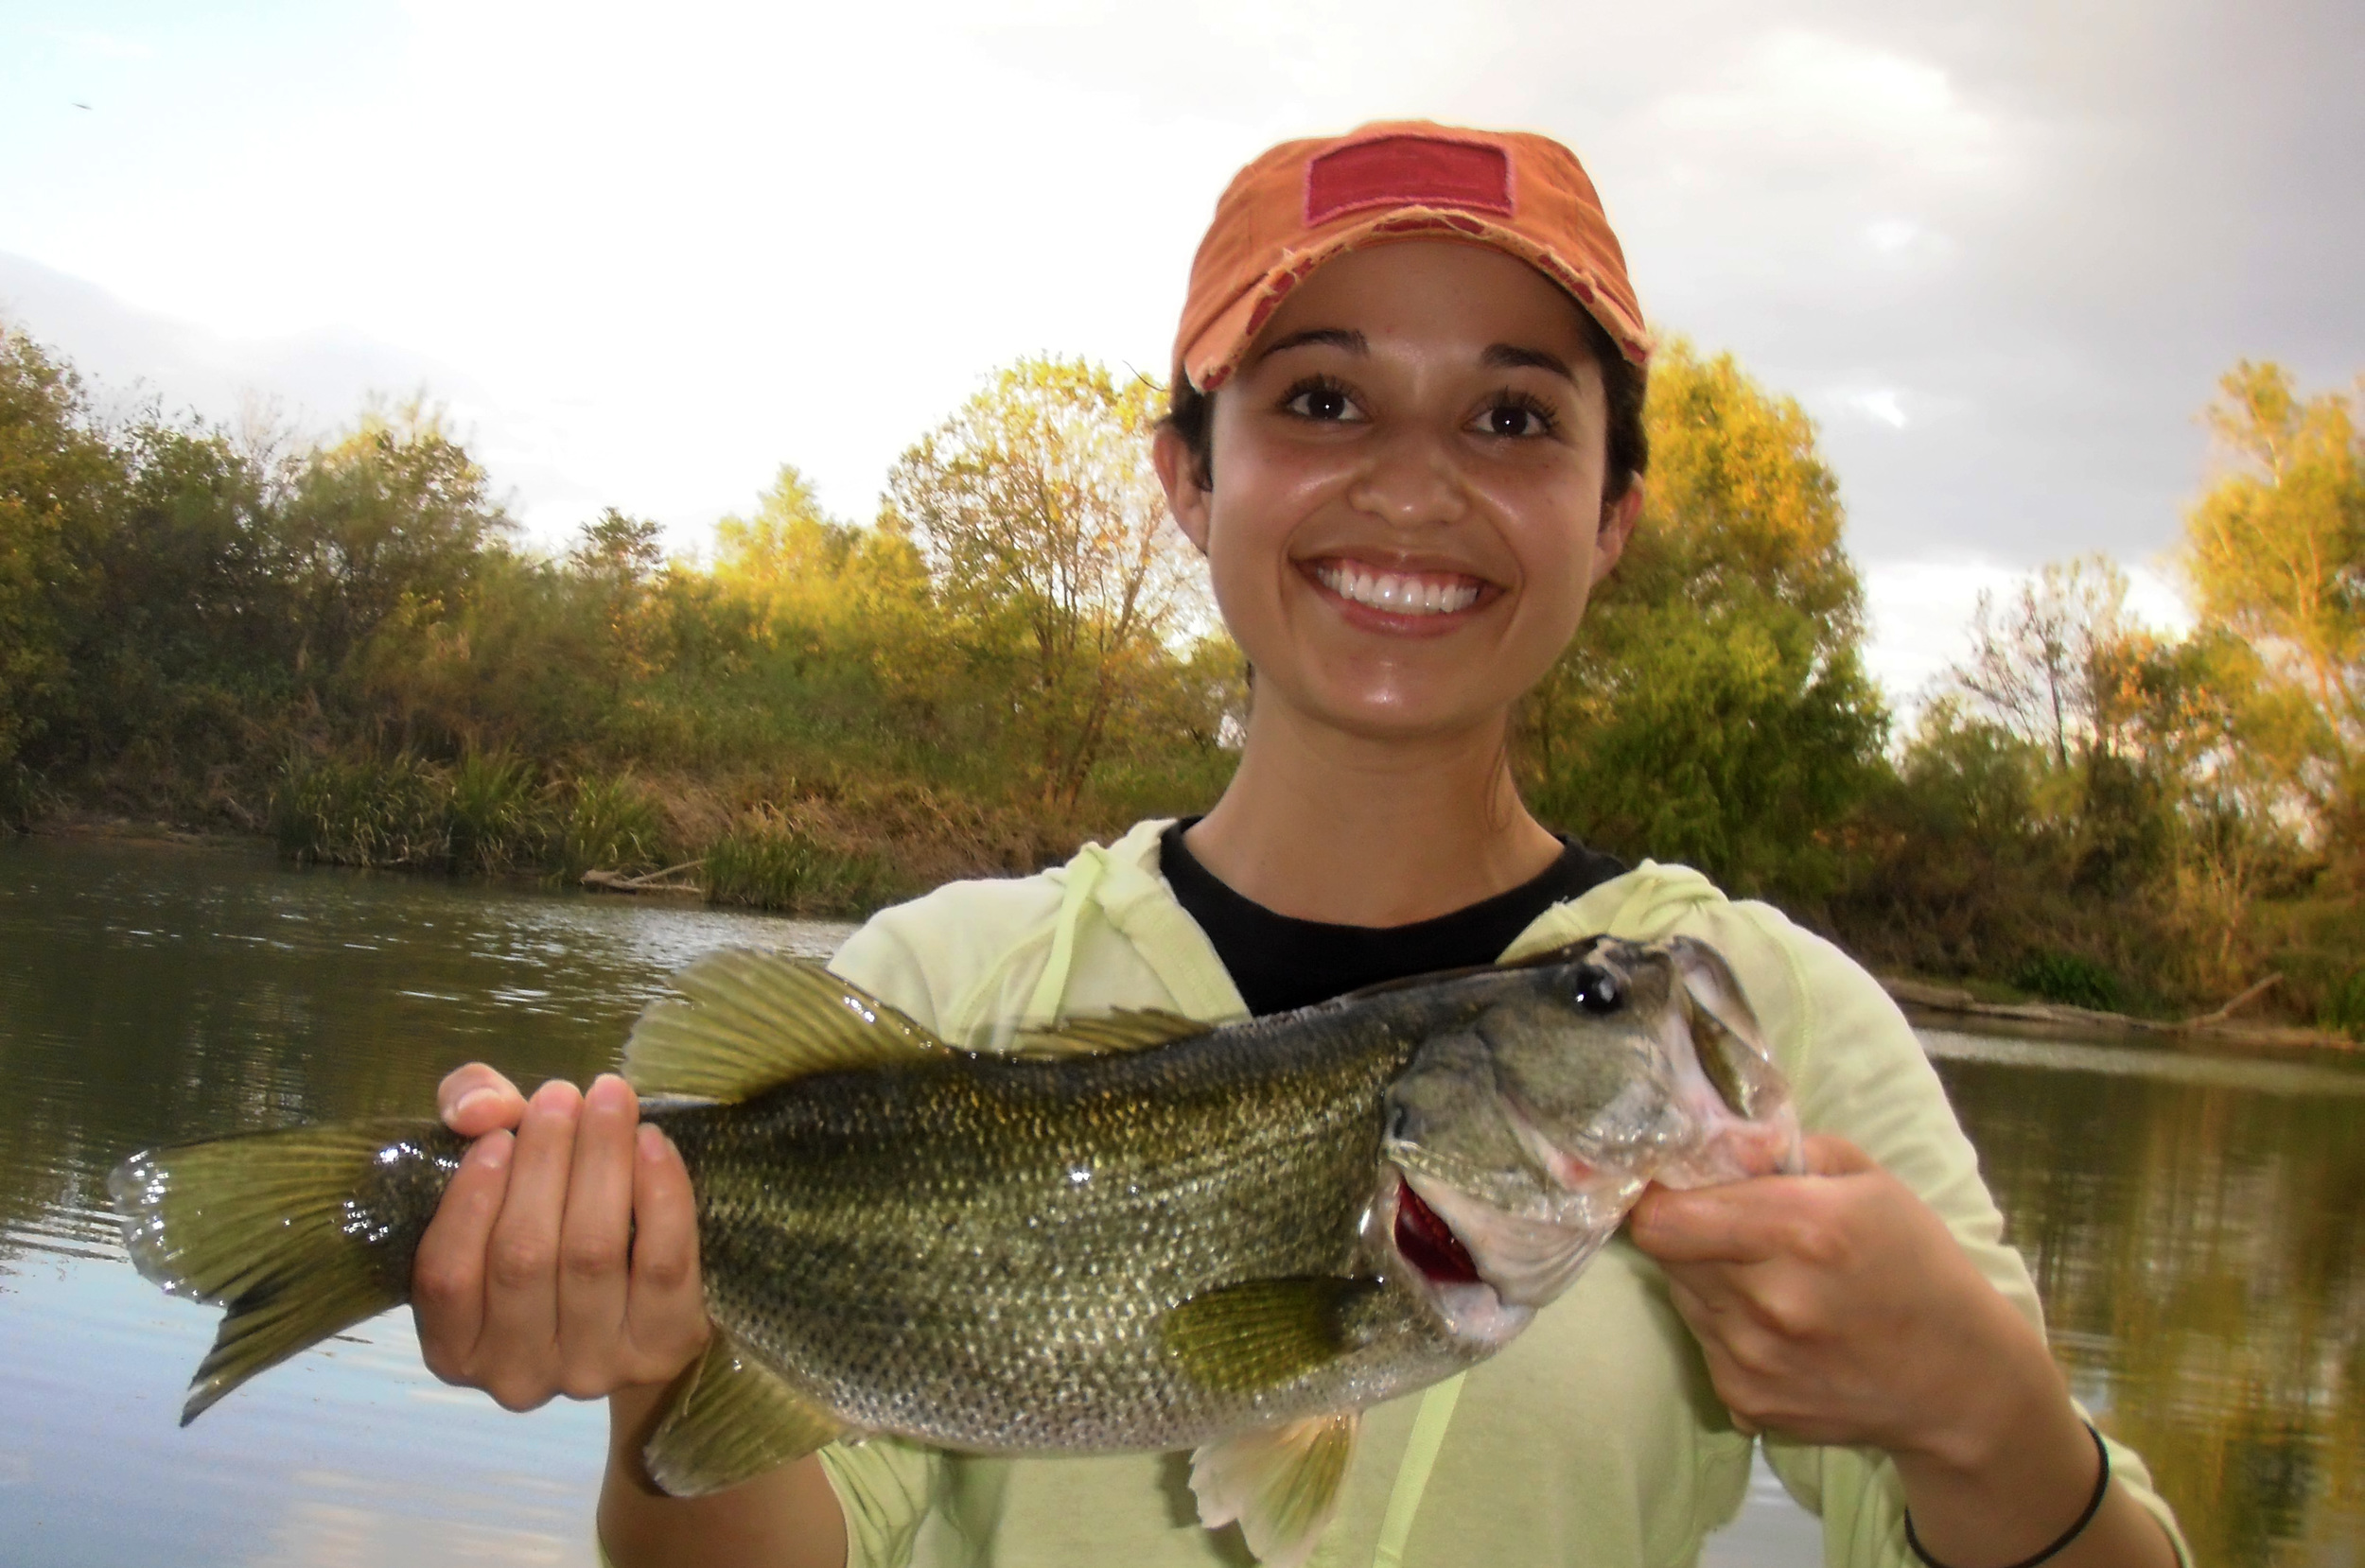 First time fly fisher Vanessa with a Colorado River bass